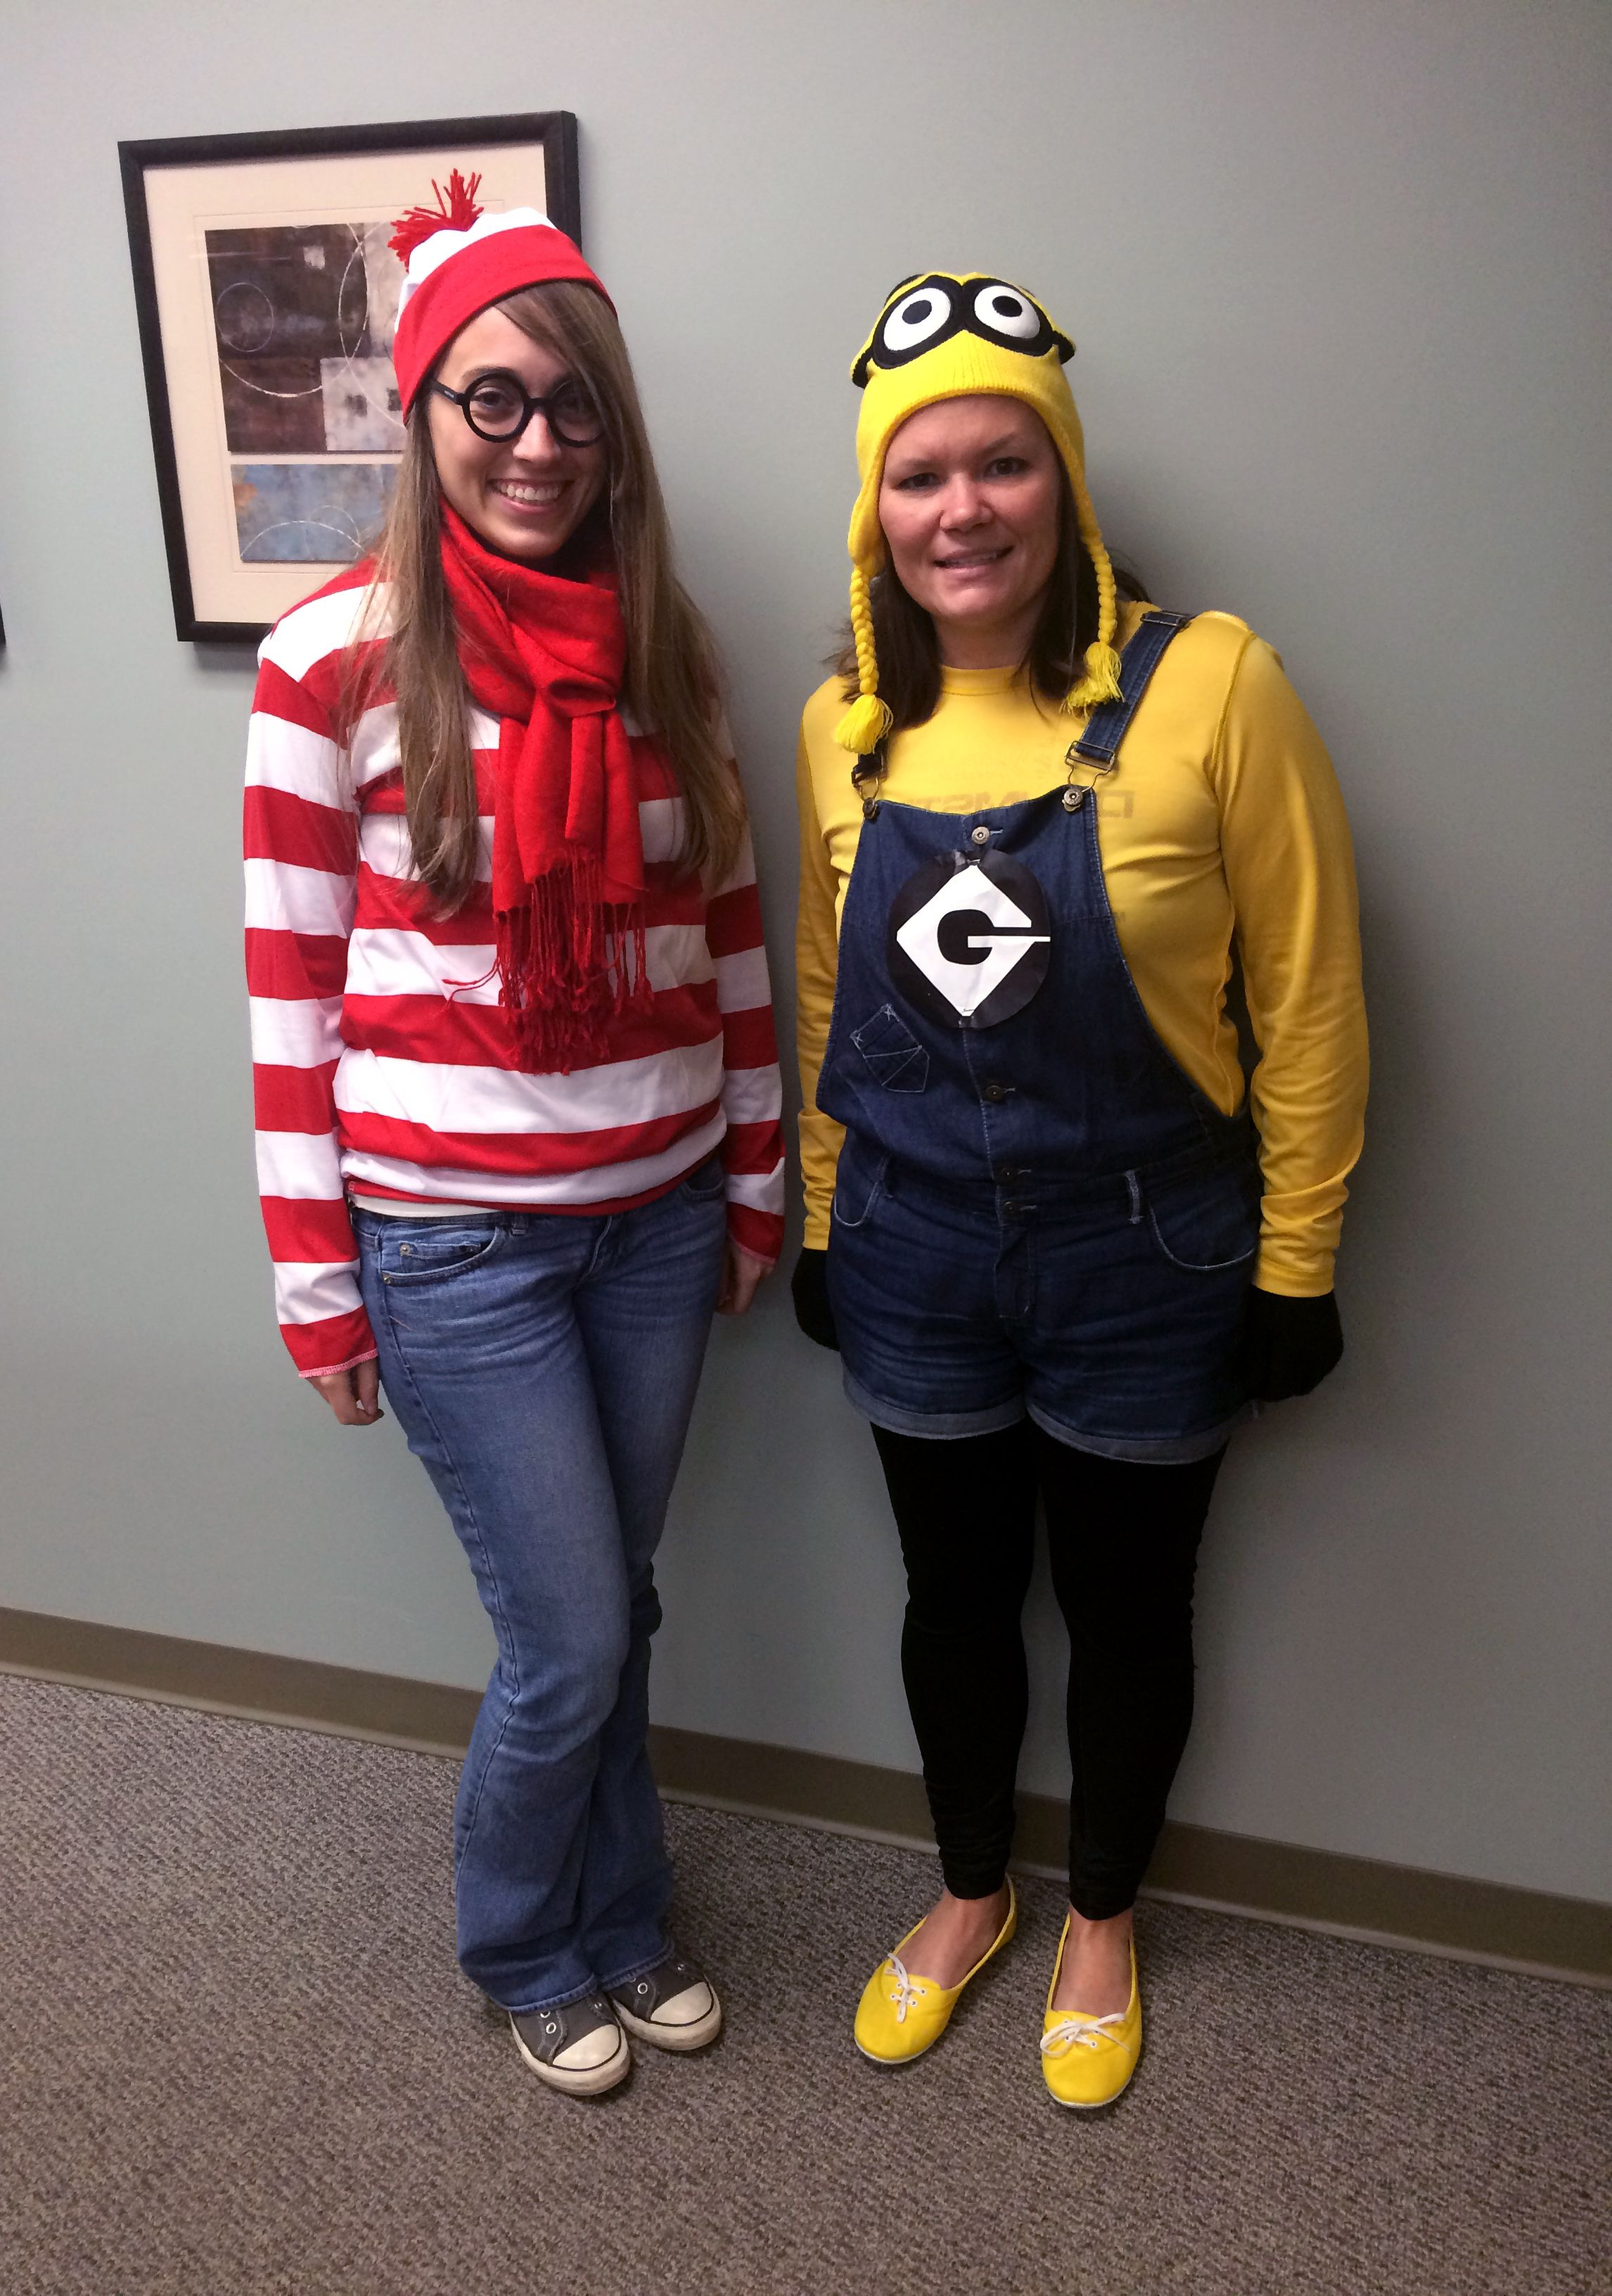 creative halloween costume for the office | where's waldo and minion